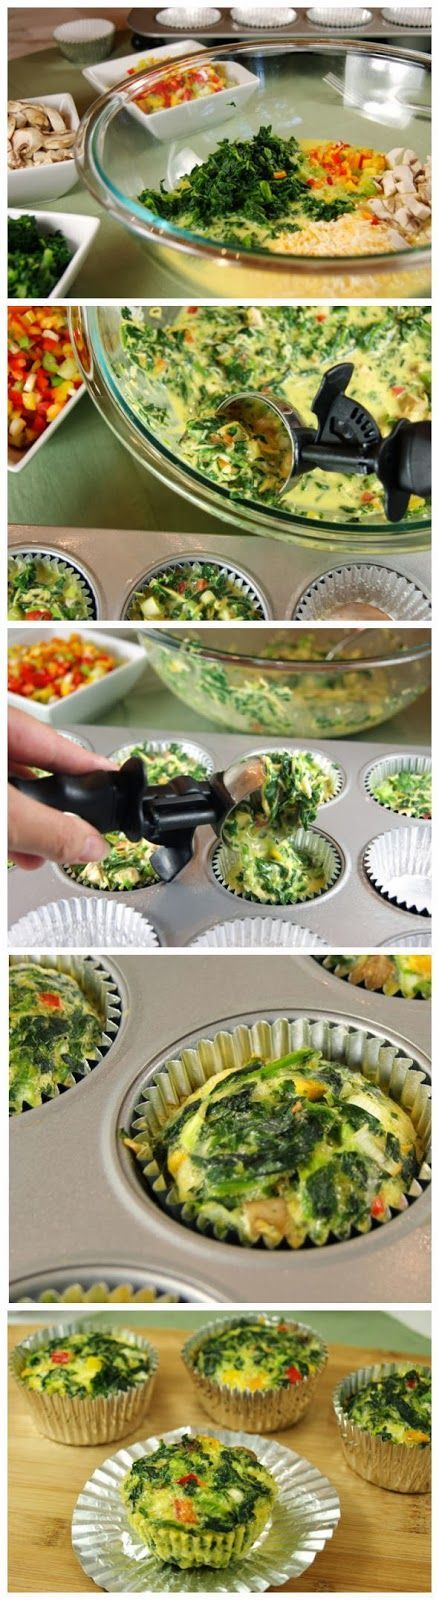 Veggie Quiche Cups To-Go ~ Best Food Cloud Ingredients 1 (10 oz.) package frozen chopped spinach, thawed and well-drained 7 eggs or 1 3/4 c. egg substitute 3/4 c. shredded cheddar cheese 1/4 c. finely diced red bell pepper 1/4 c. finely diced mushrooms 1/4 c. finely diced onion Instructions: bake on 350 for 25 mins.